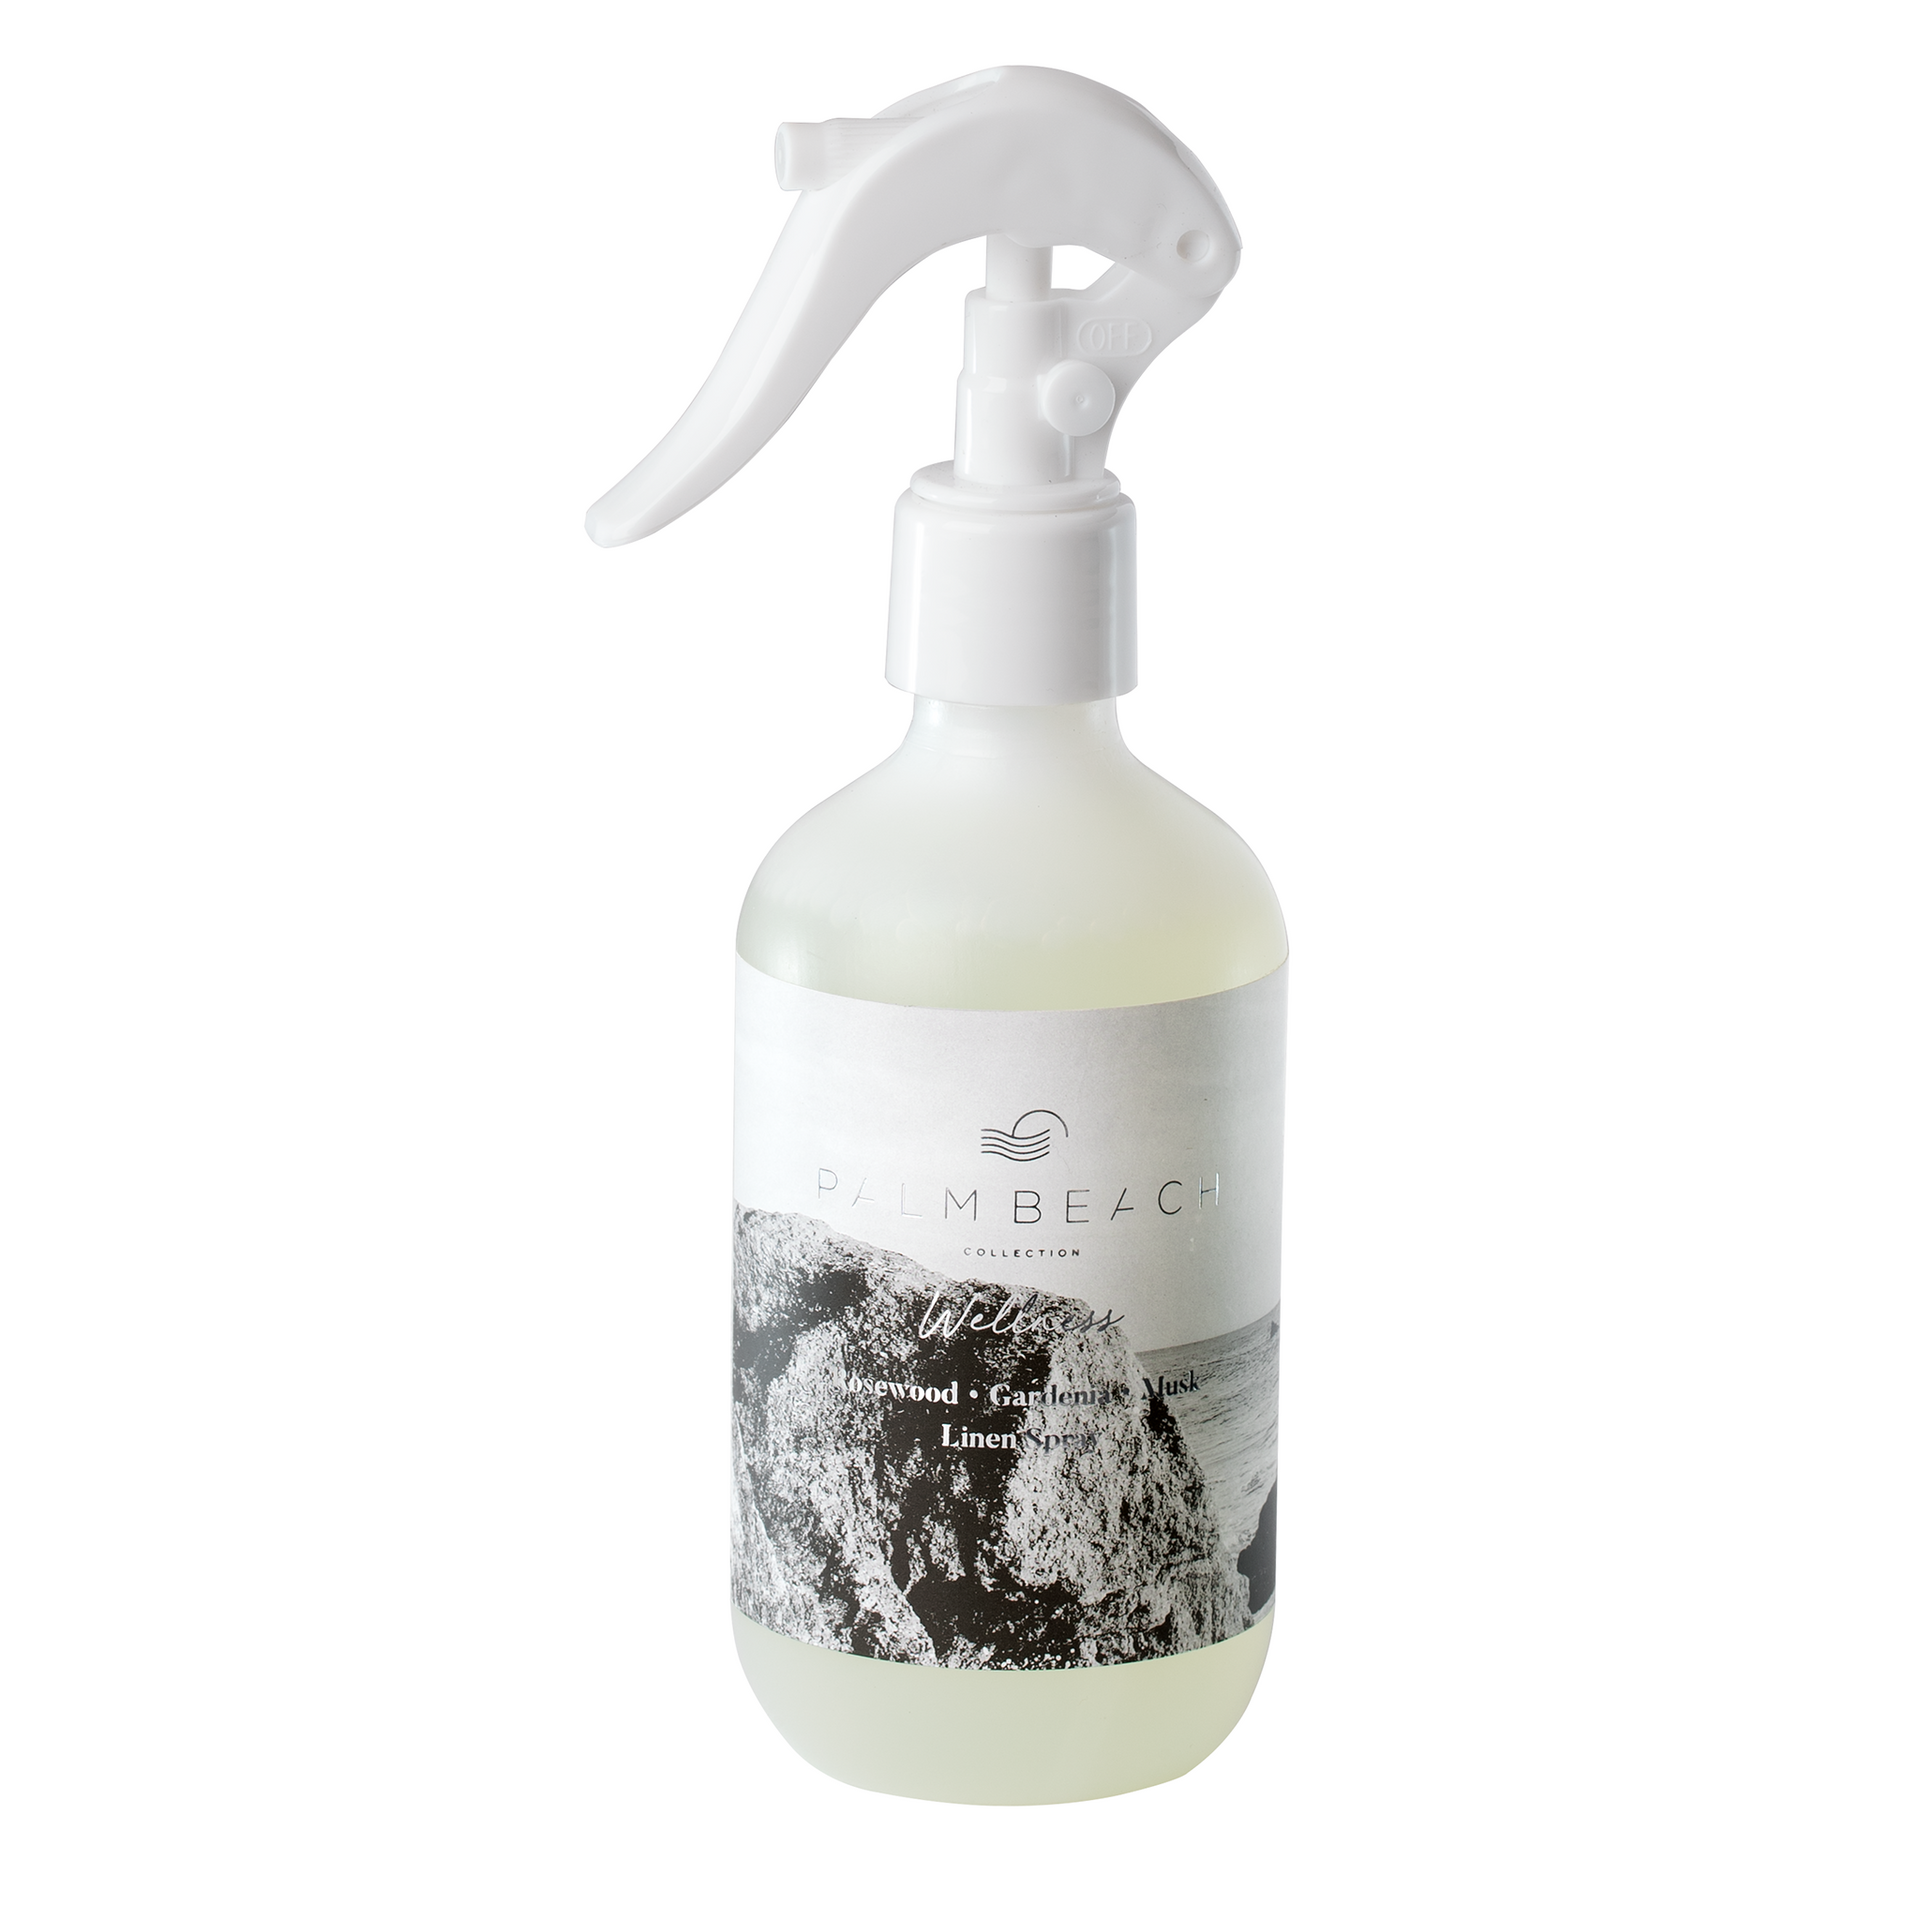 Rosewood, Gardenia & Musk <br> 250ml Linen Spray